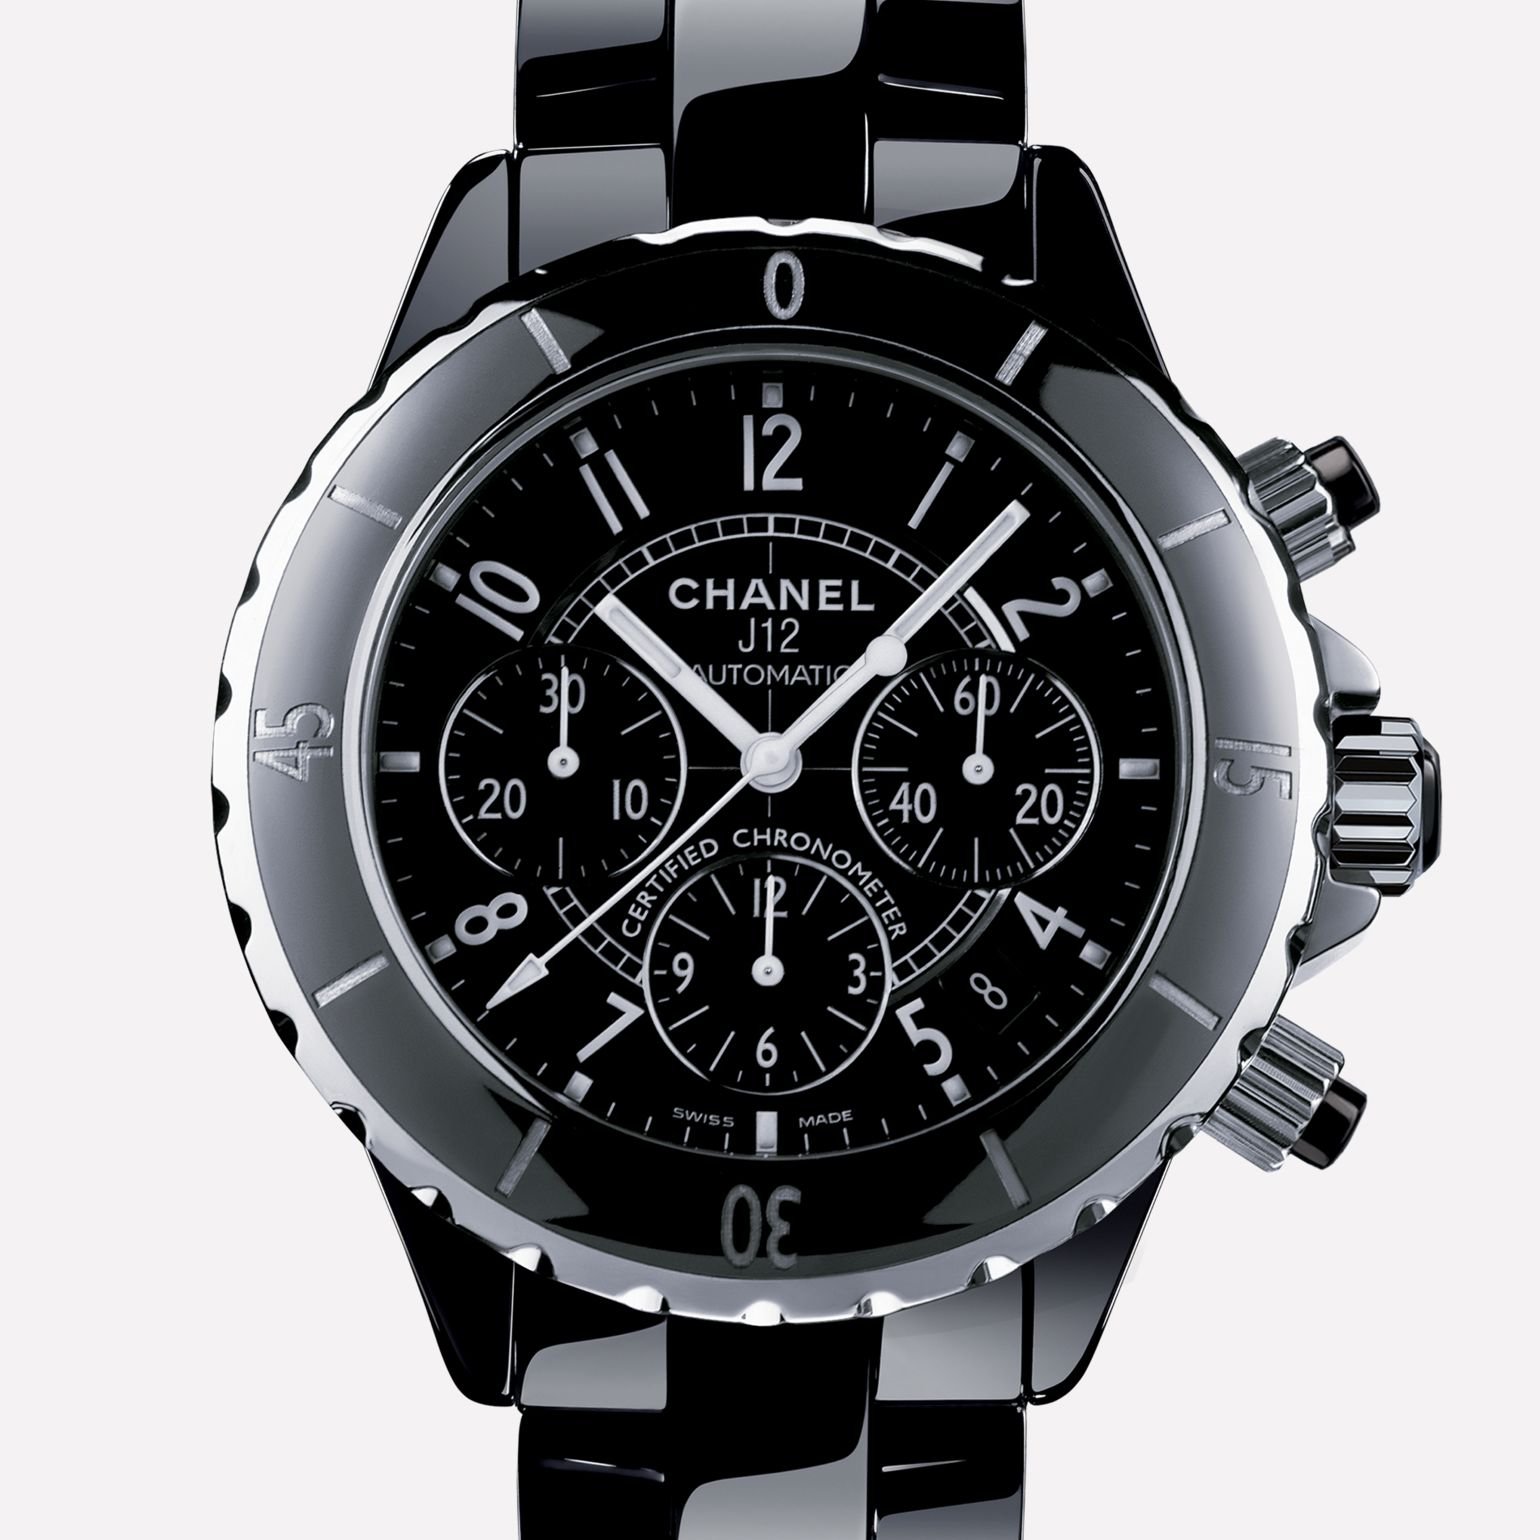 J12 CHRONOGRAPH Black highly resistant ceramic and steel